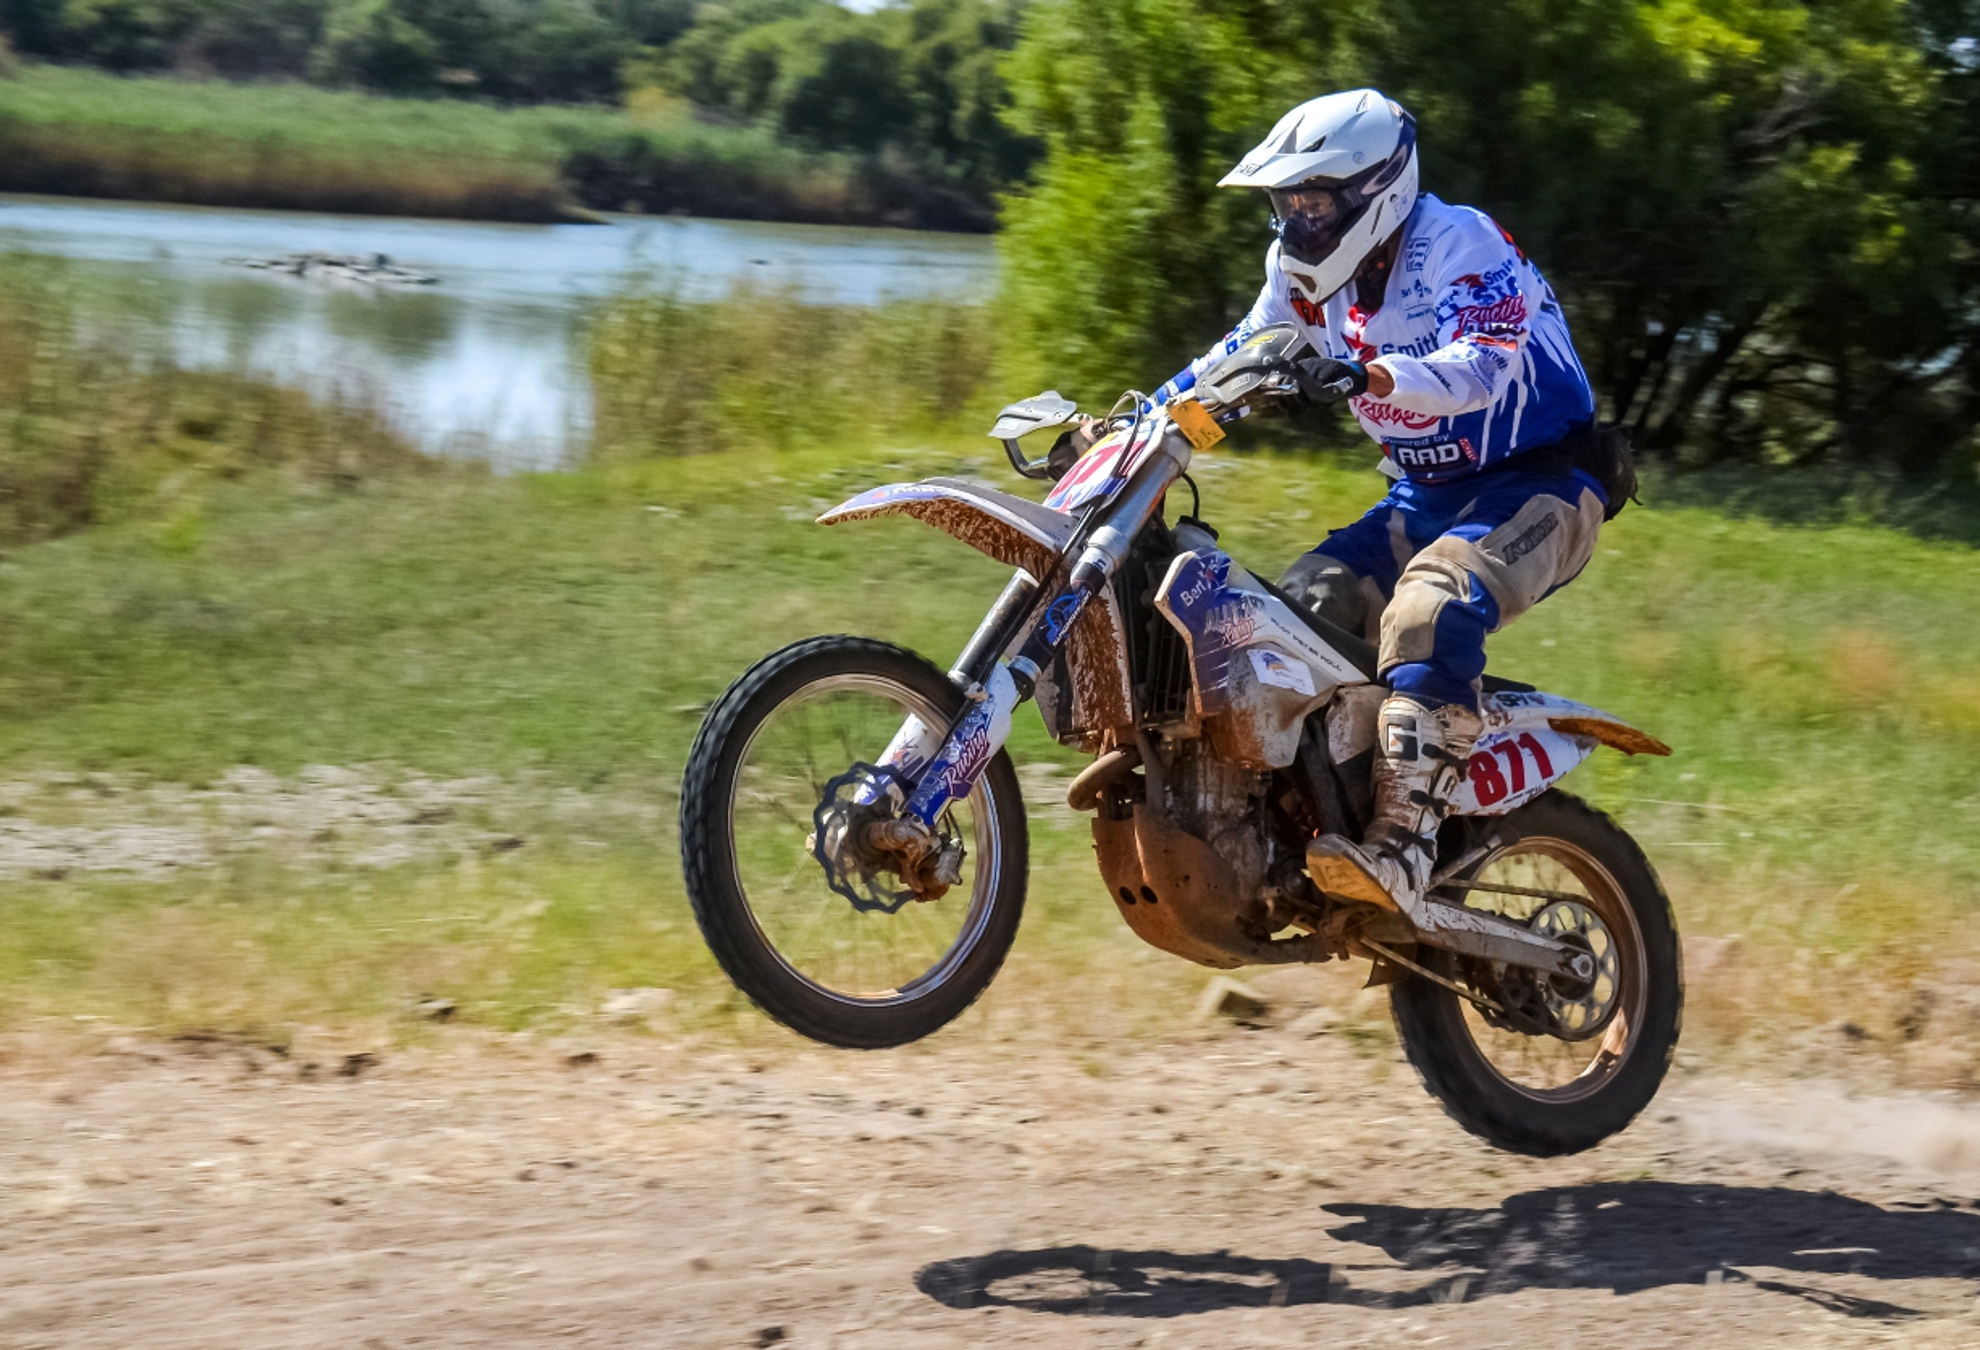 National-Off-Road-Motorcycle-Ventersdorp